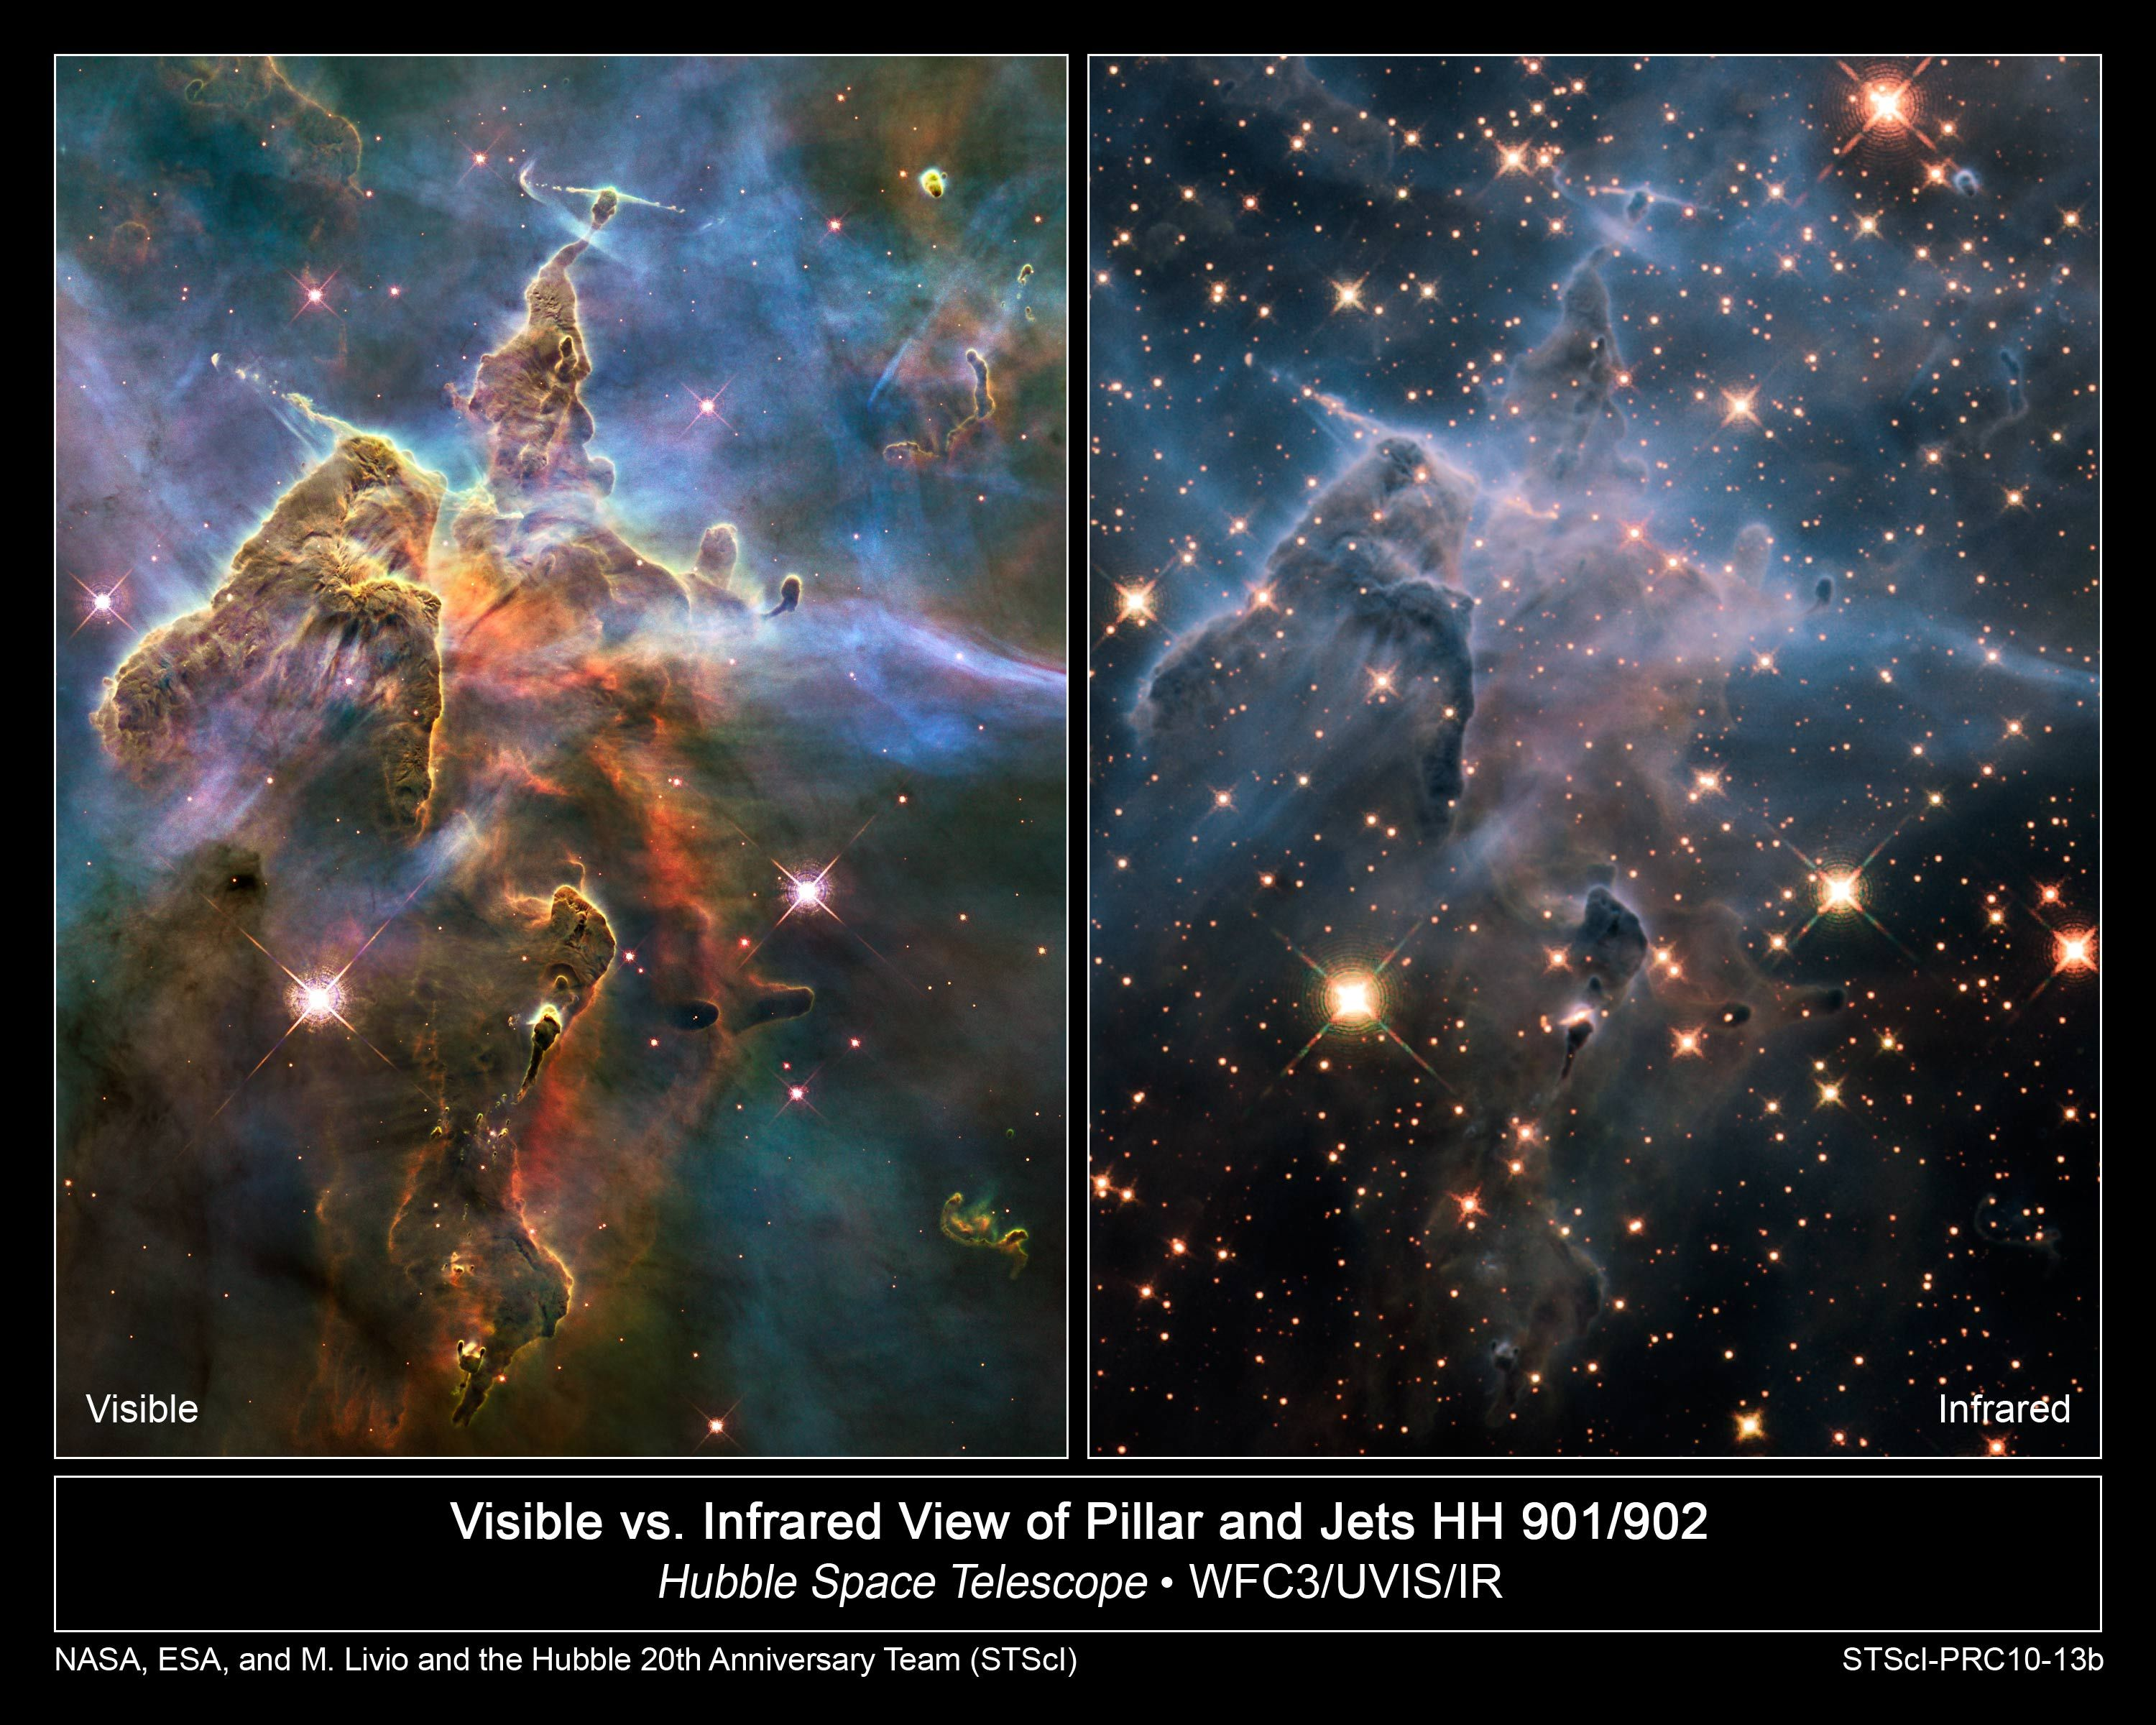 Visible vs Infrared View of Pilar and Jets of Carina